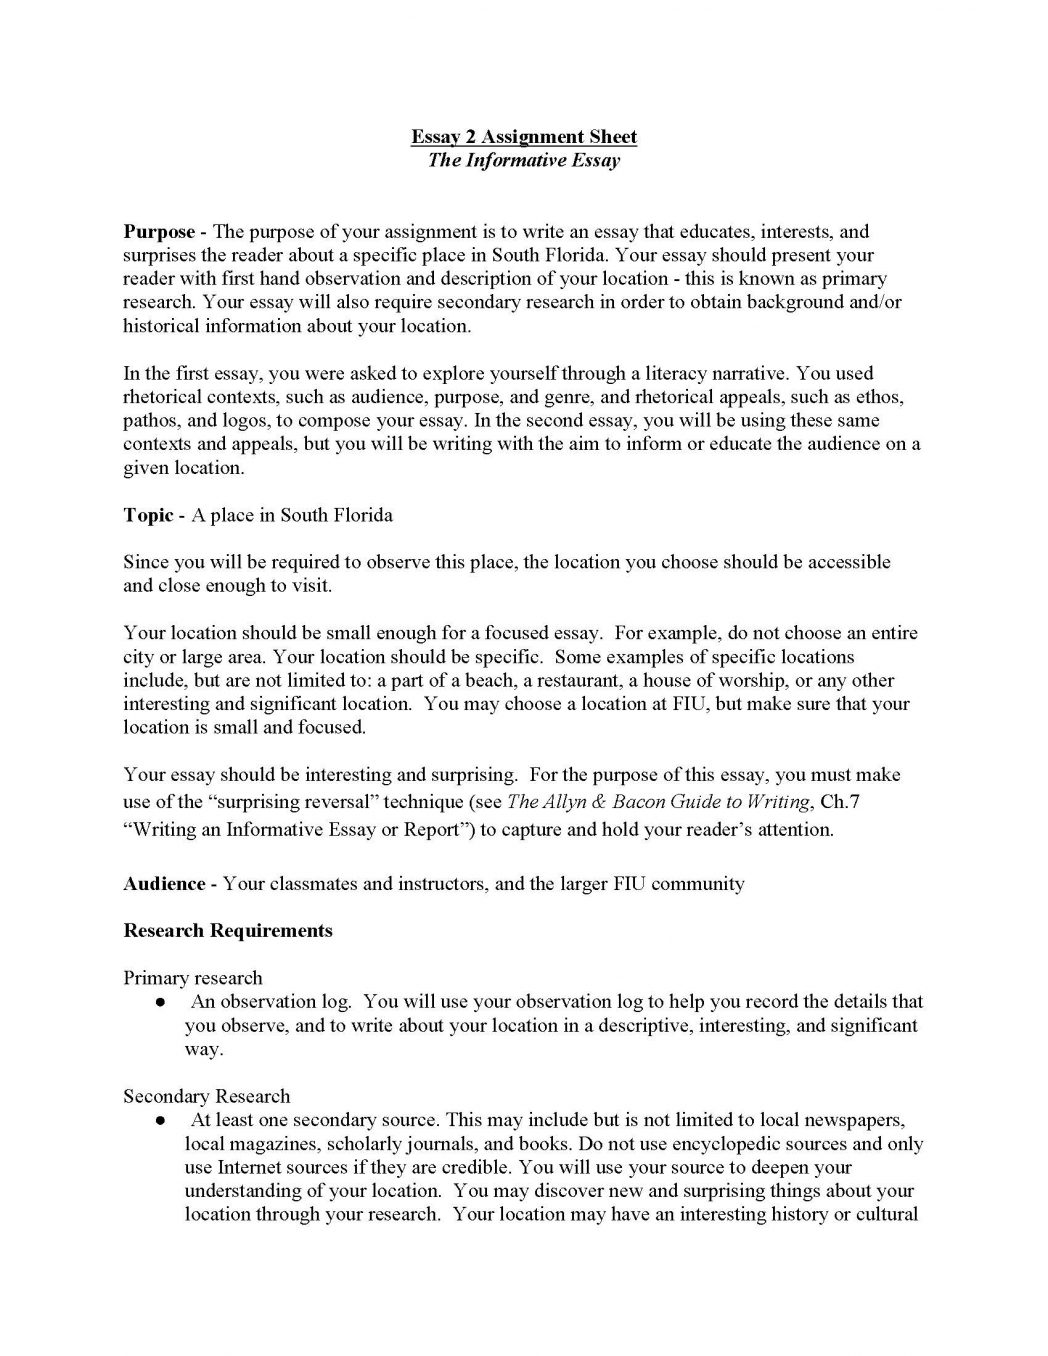 014 Essay Example How To Write This I Believe Synthesis Topic Ideas Informative Research Topics Samples Unit Assignment P Good Template Fantastic A What On Things Full